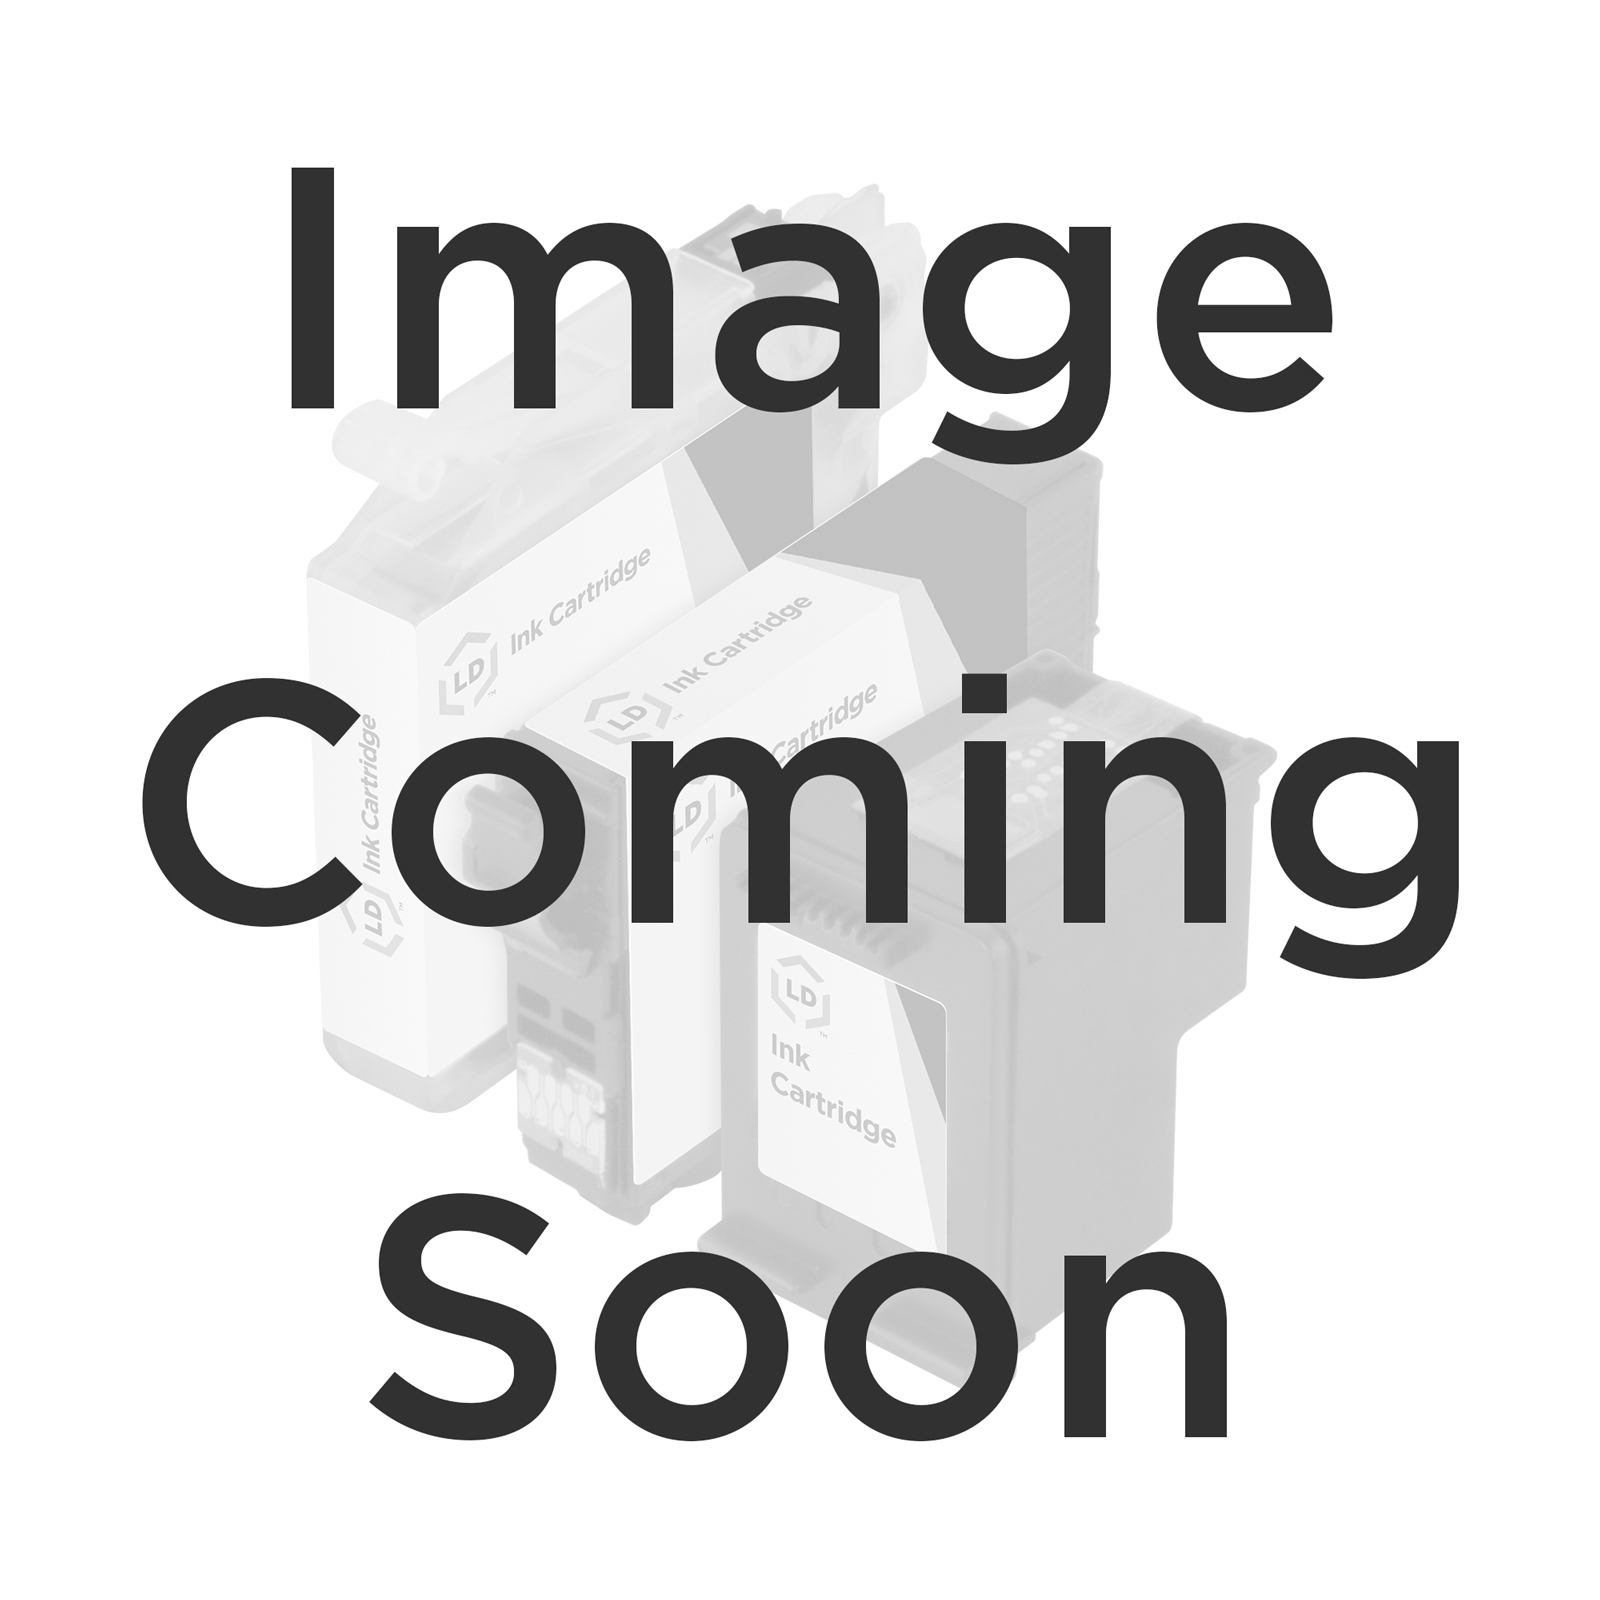 Find It Hanging CD/DVD Page - 15 per pack